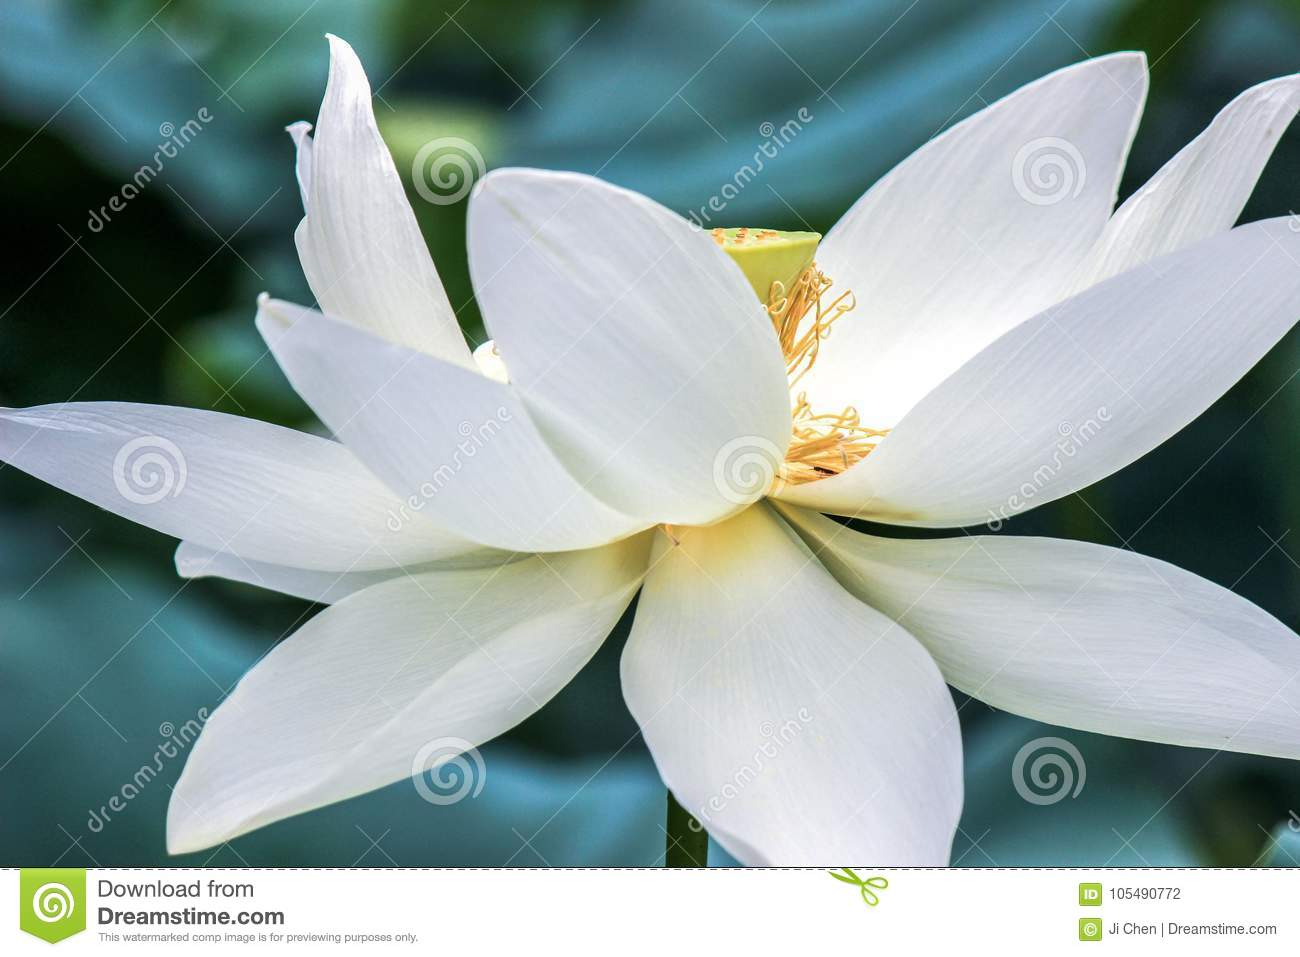 Close Up Of White Lotus Flower With Yellow Stamen Stock Photo